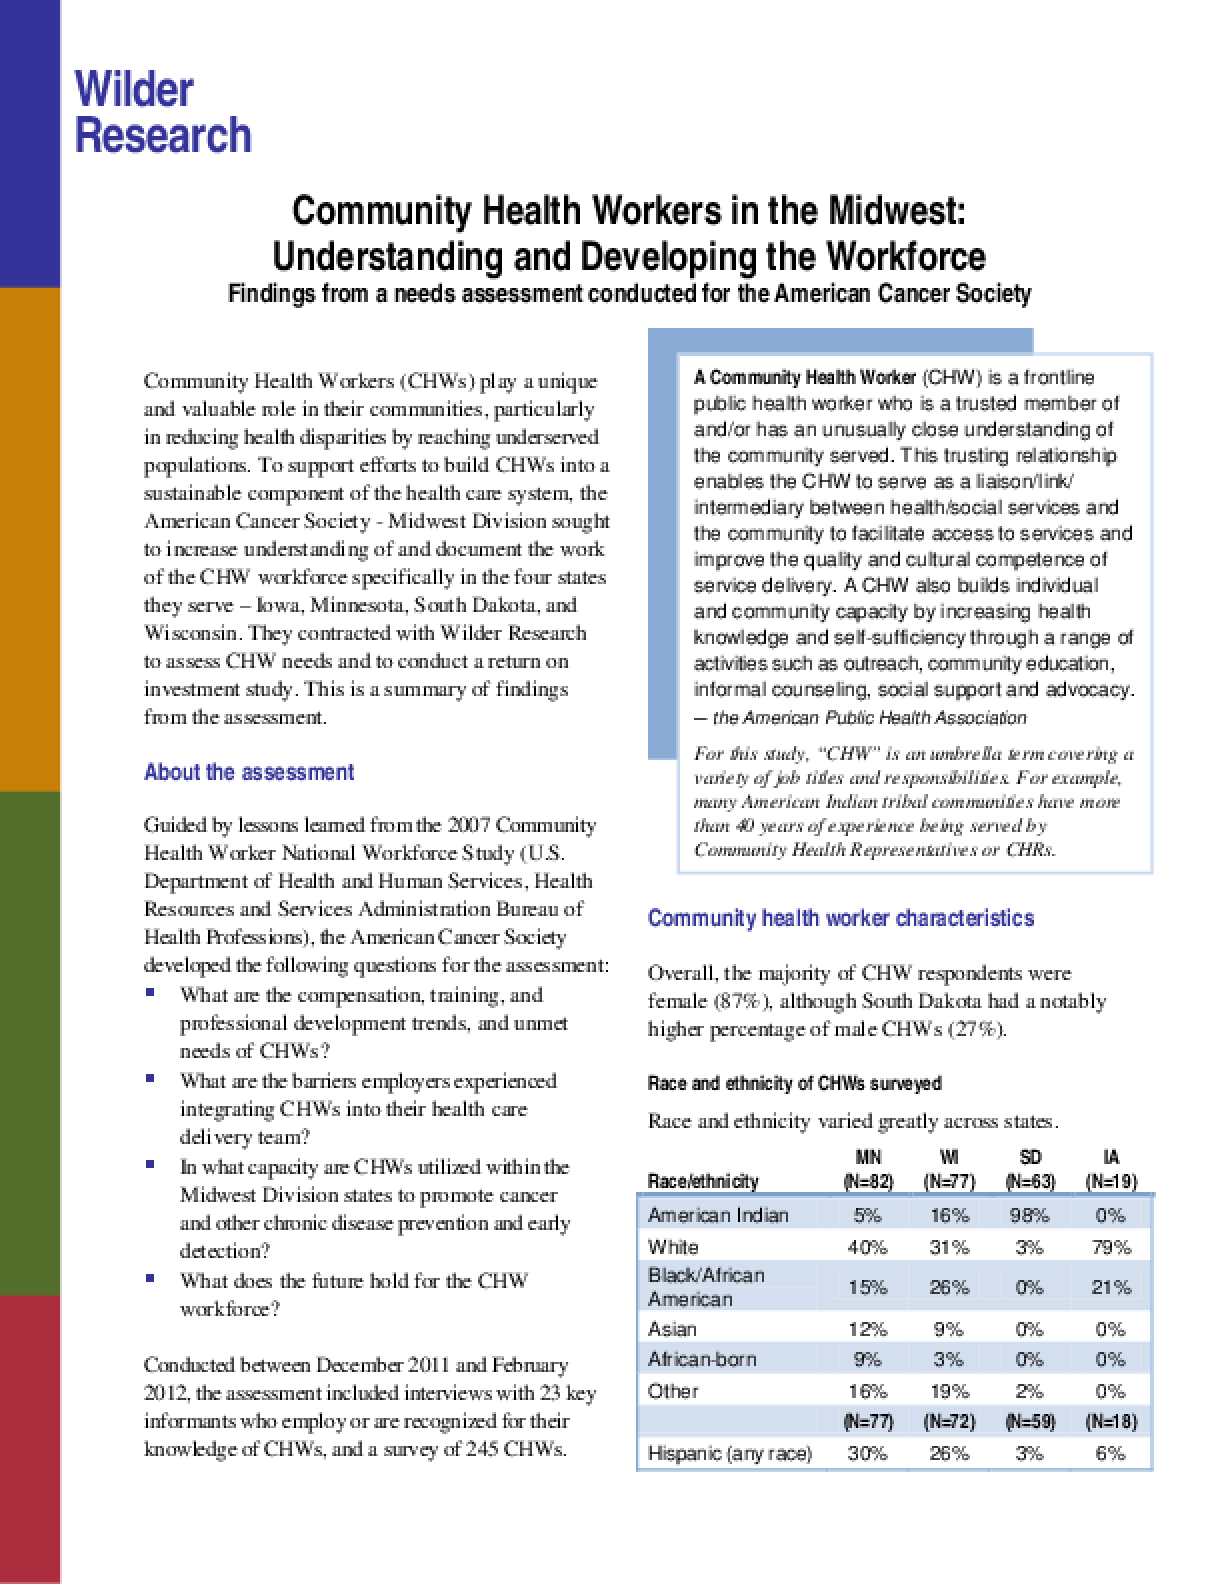 Community Health Workers in the Midwest: Understanding and Developing the Workforce